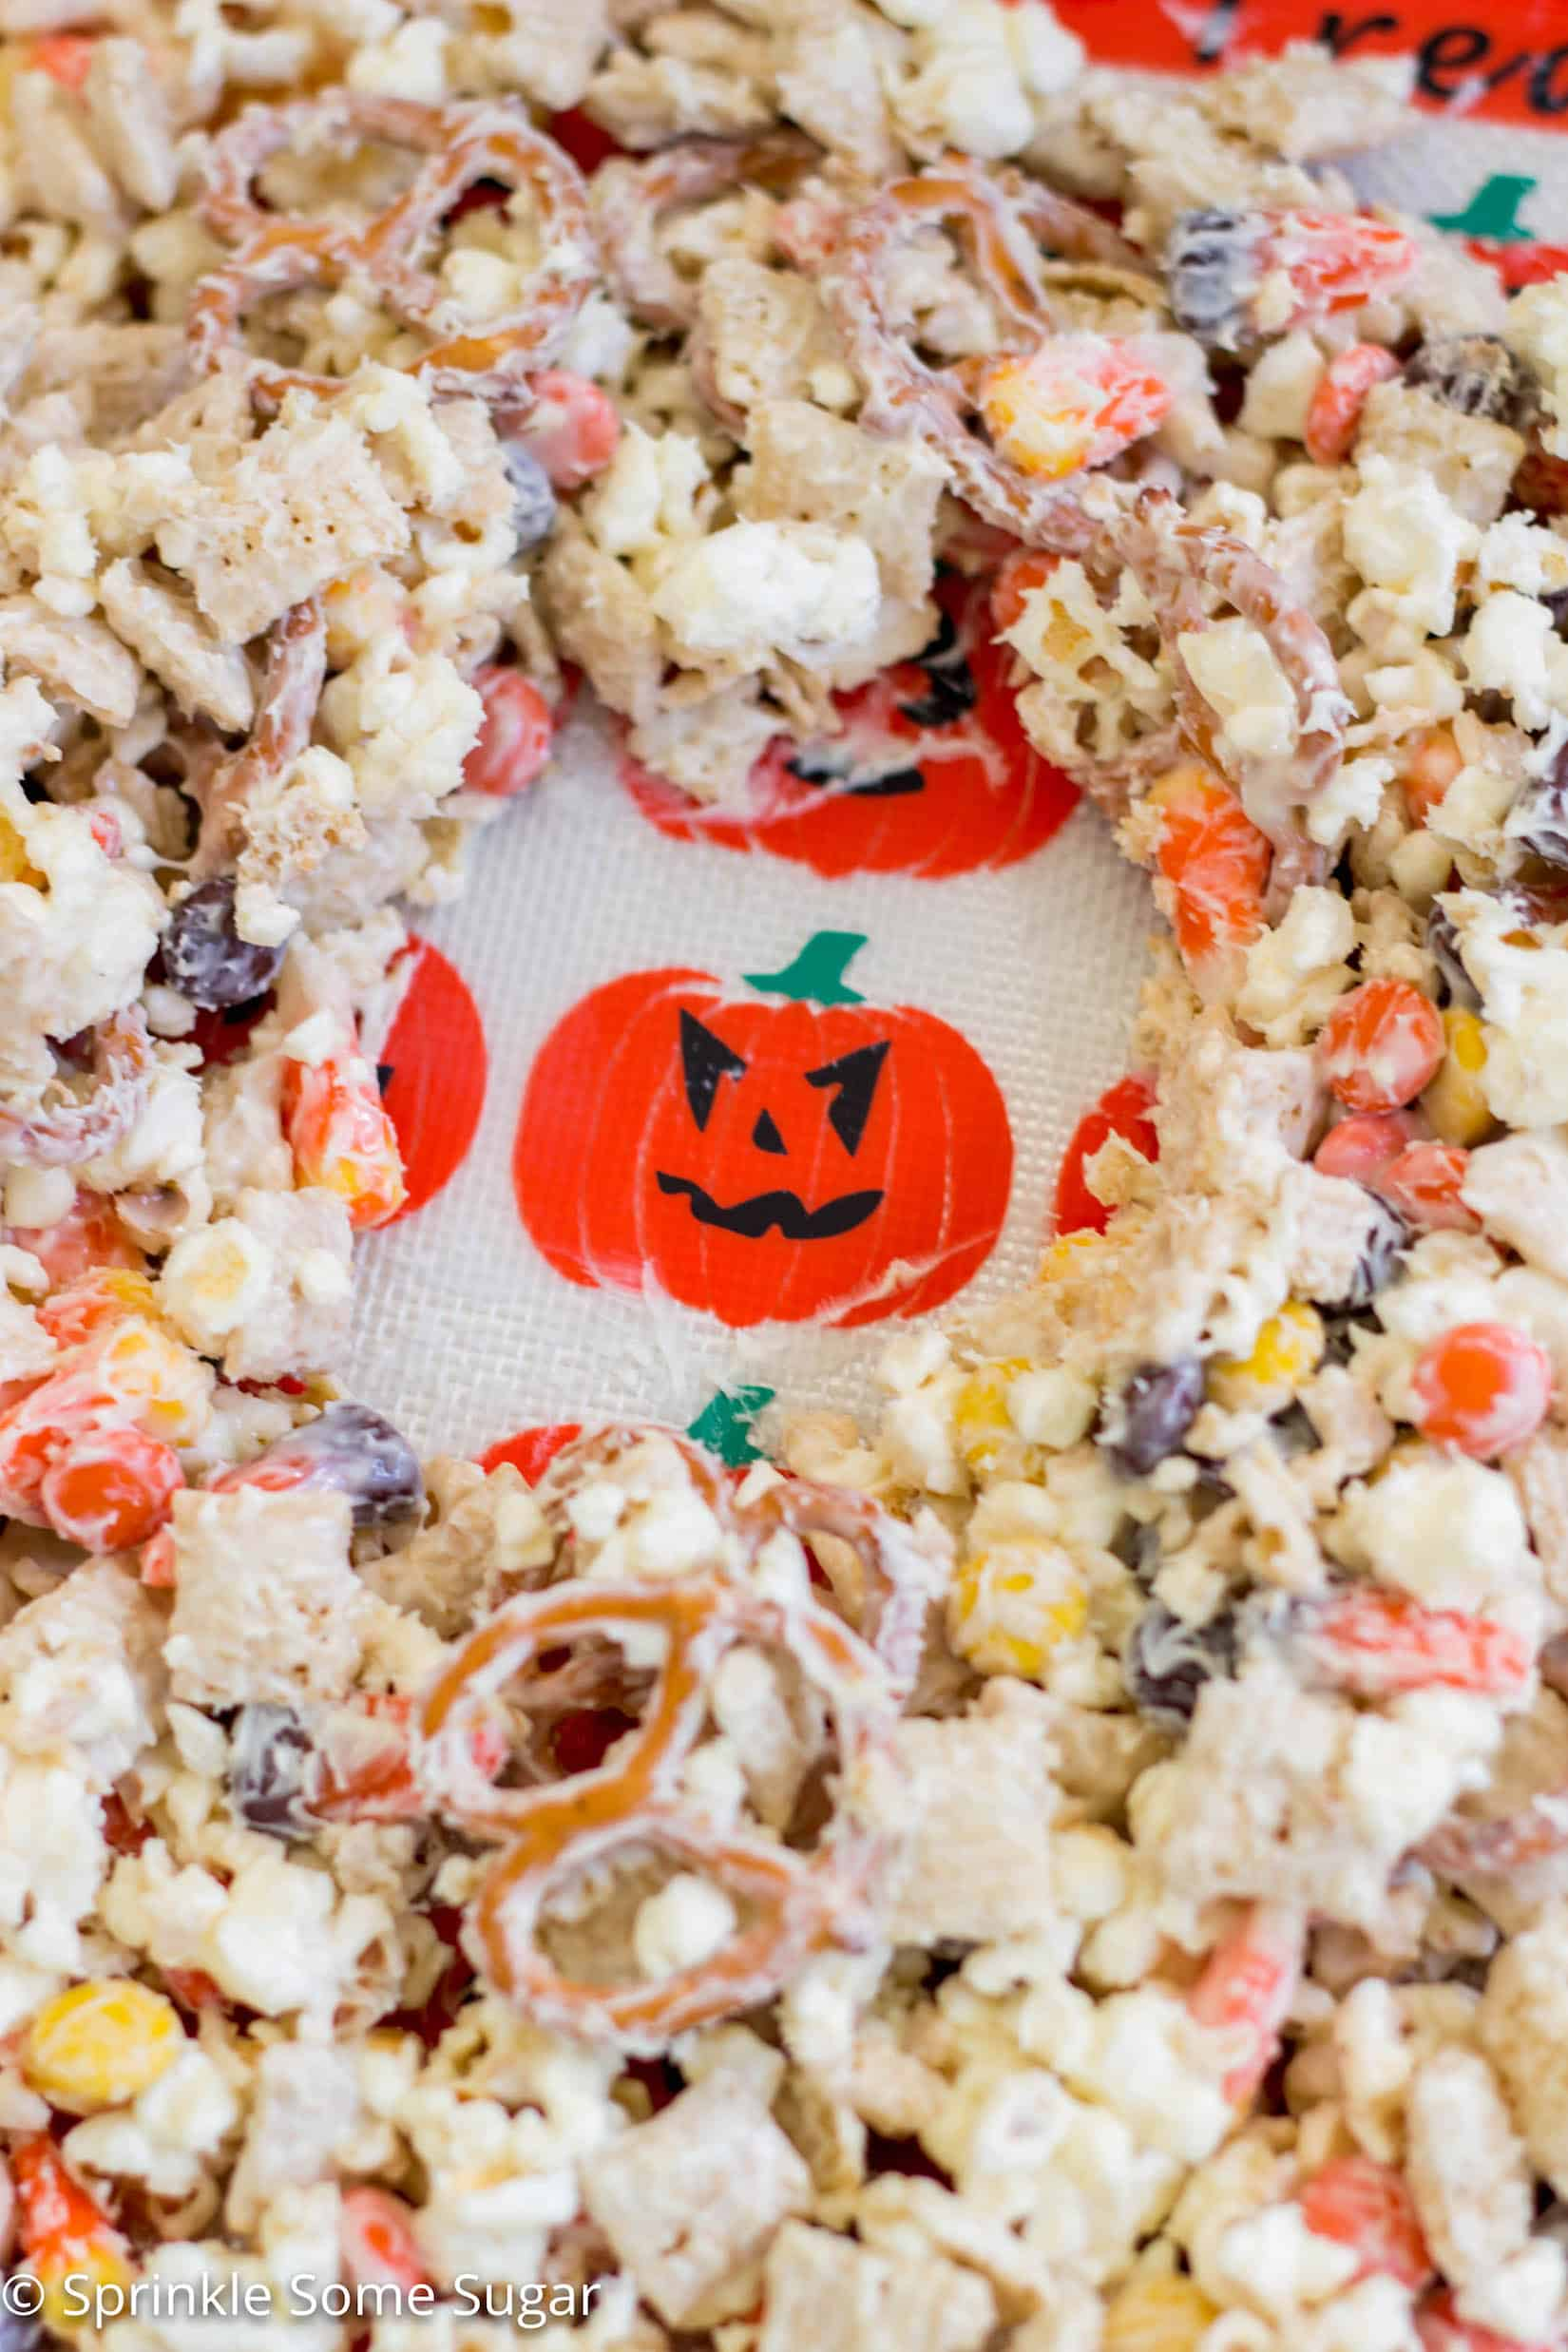 Halloween Munch - A super fun snack mix perfect for Halloween! The perfect treat for the kids to help out.